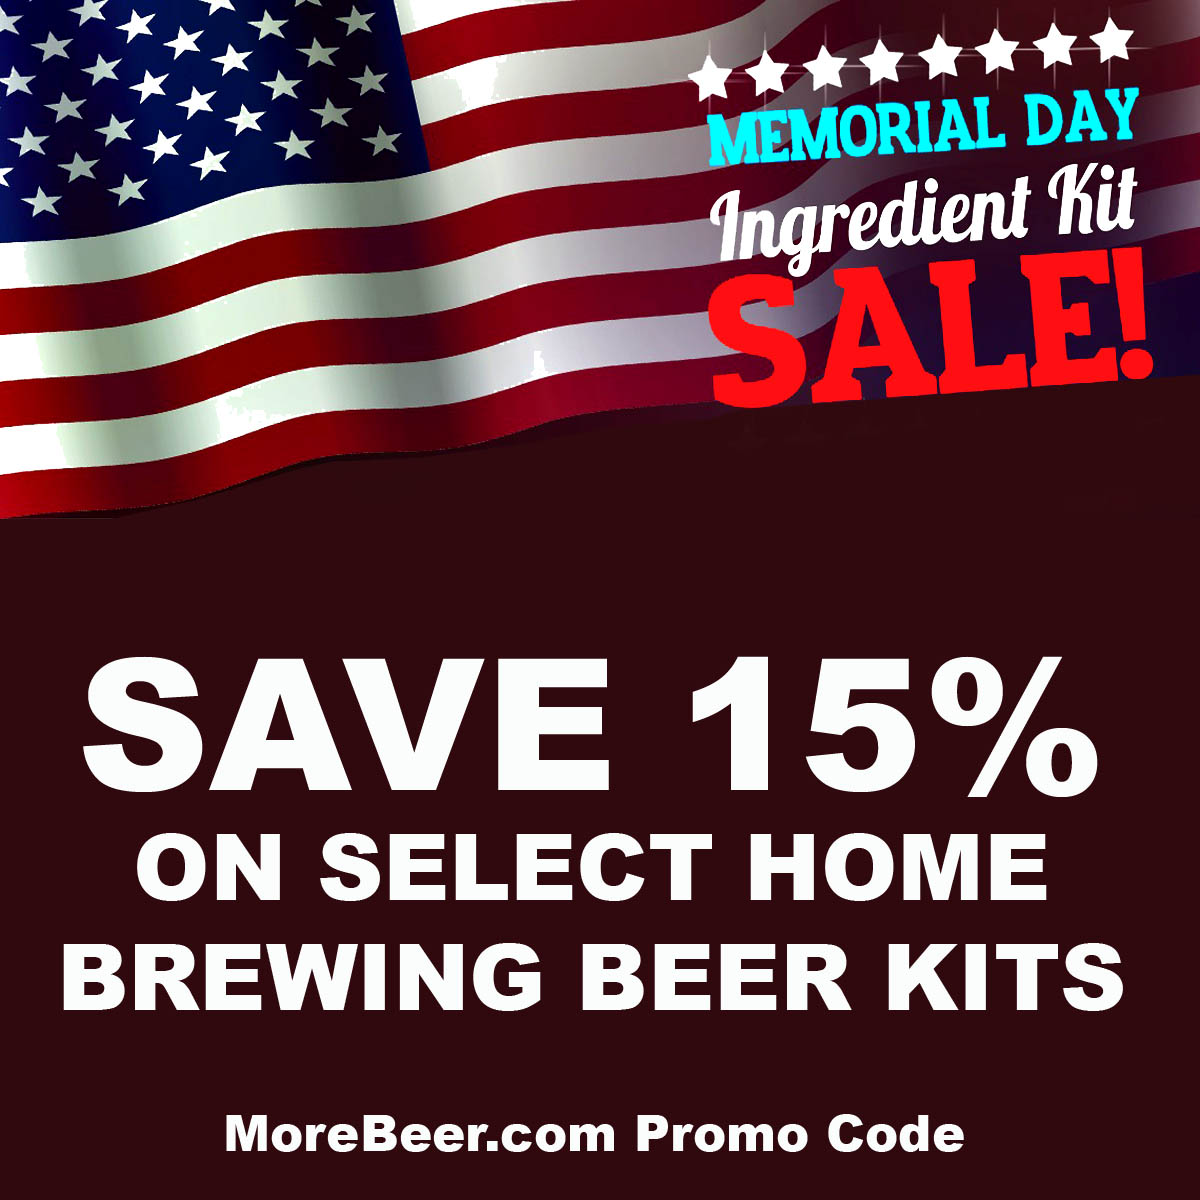 MoreBeer Save 15% On Select American Kits with this More Beer Promo Code Coupon Code